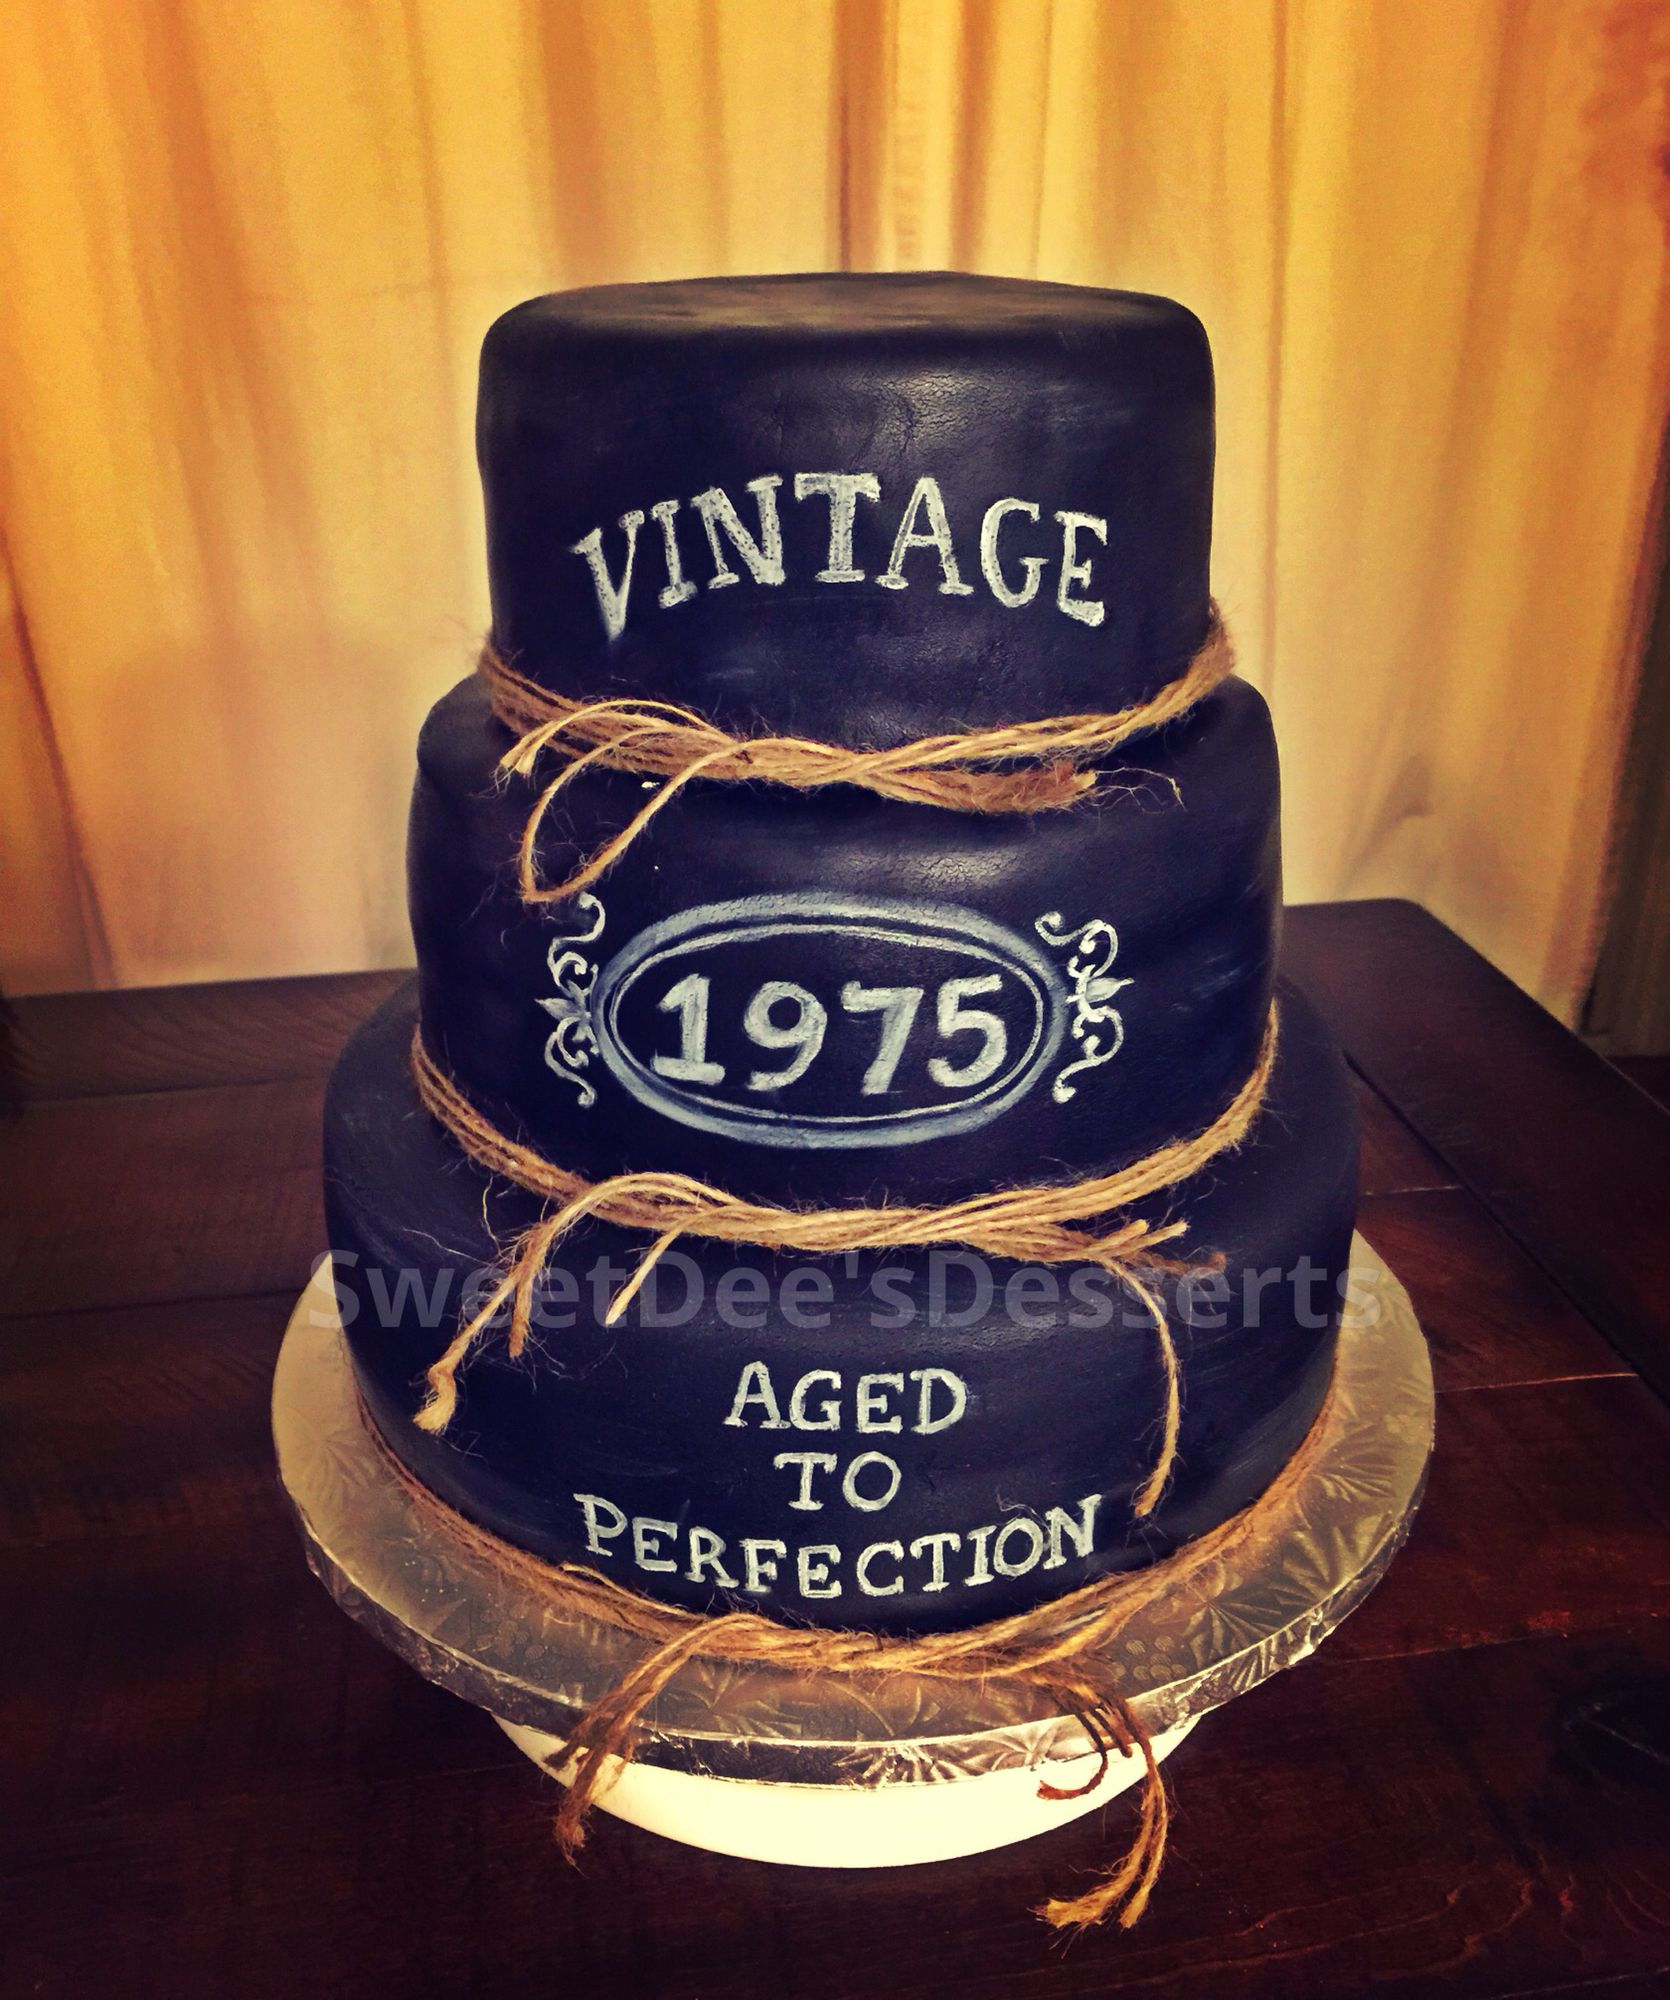 Tremendous Vintage Whiskey 40Th Aged To Perfection Cake Birthday Cake For Funny Birthday Cards Online Overcheapnameinfo